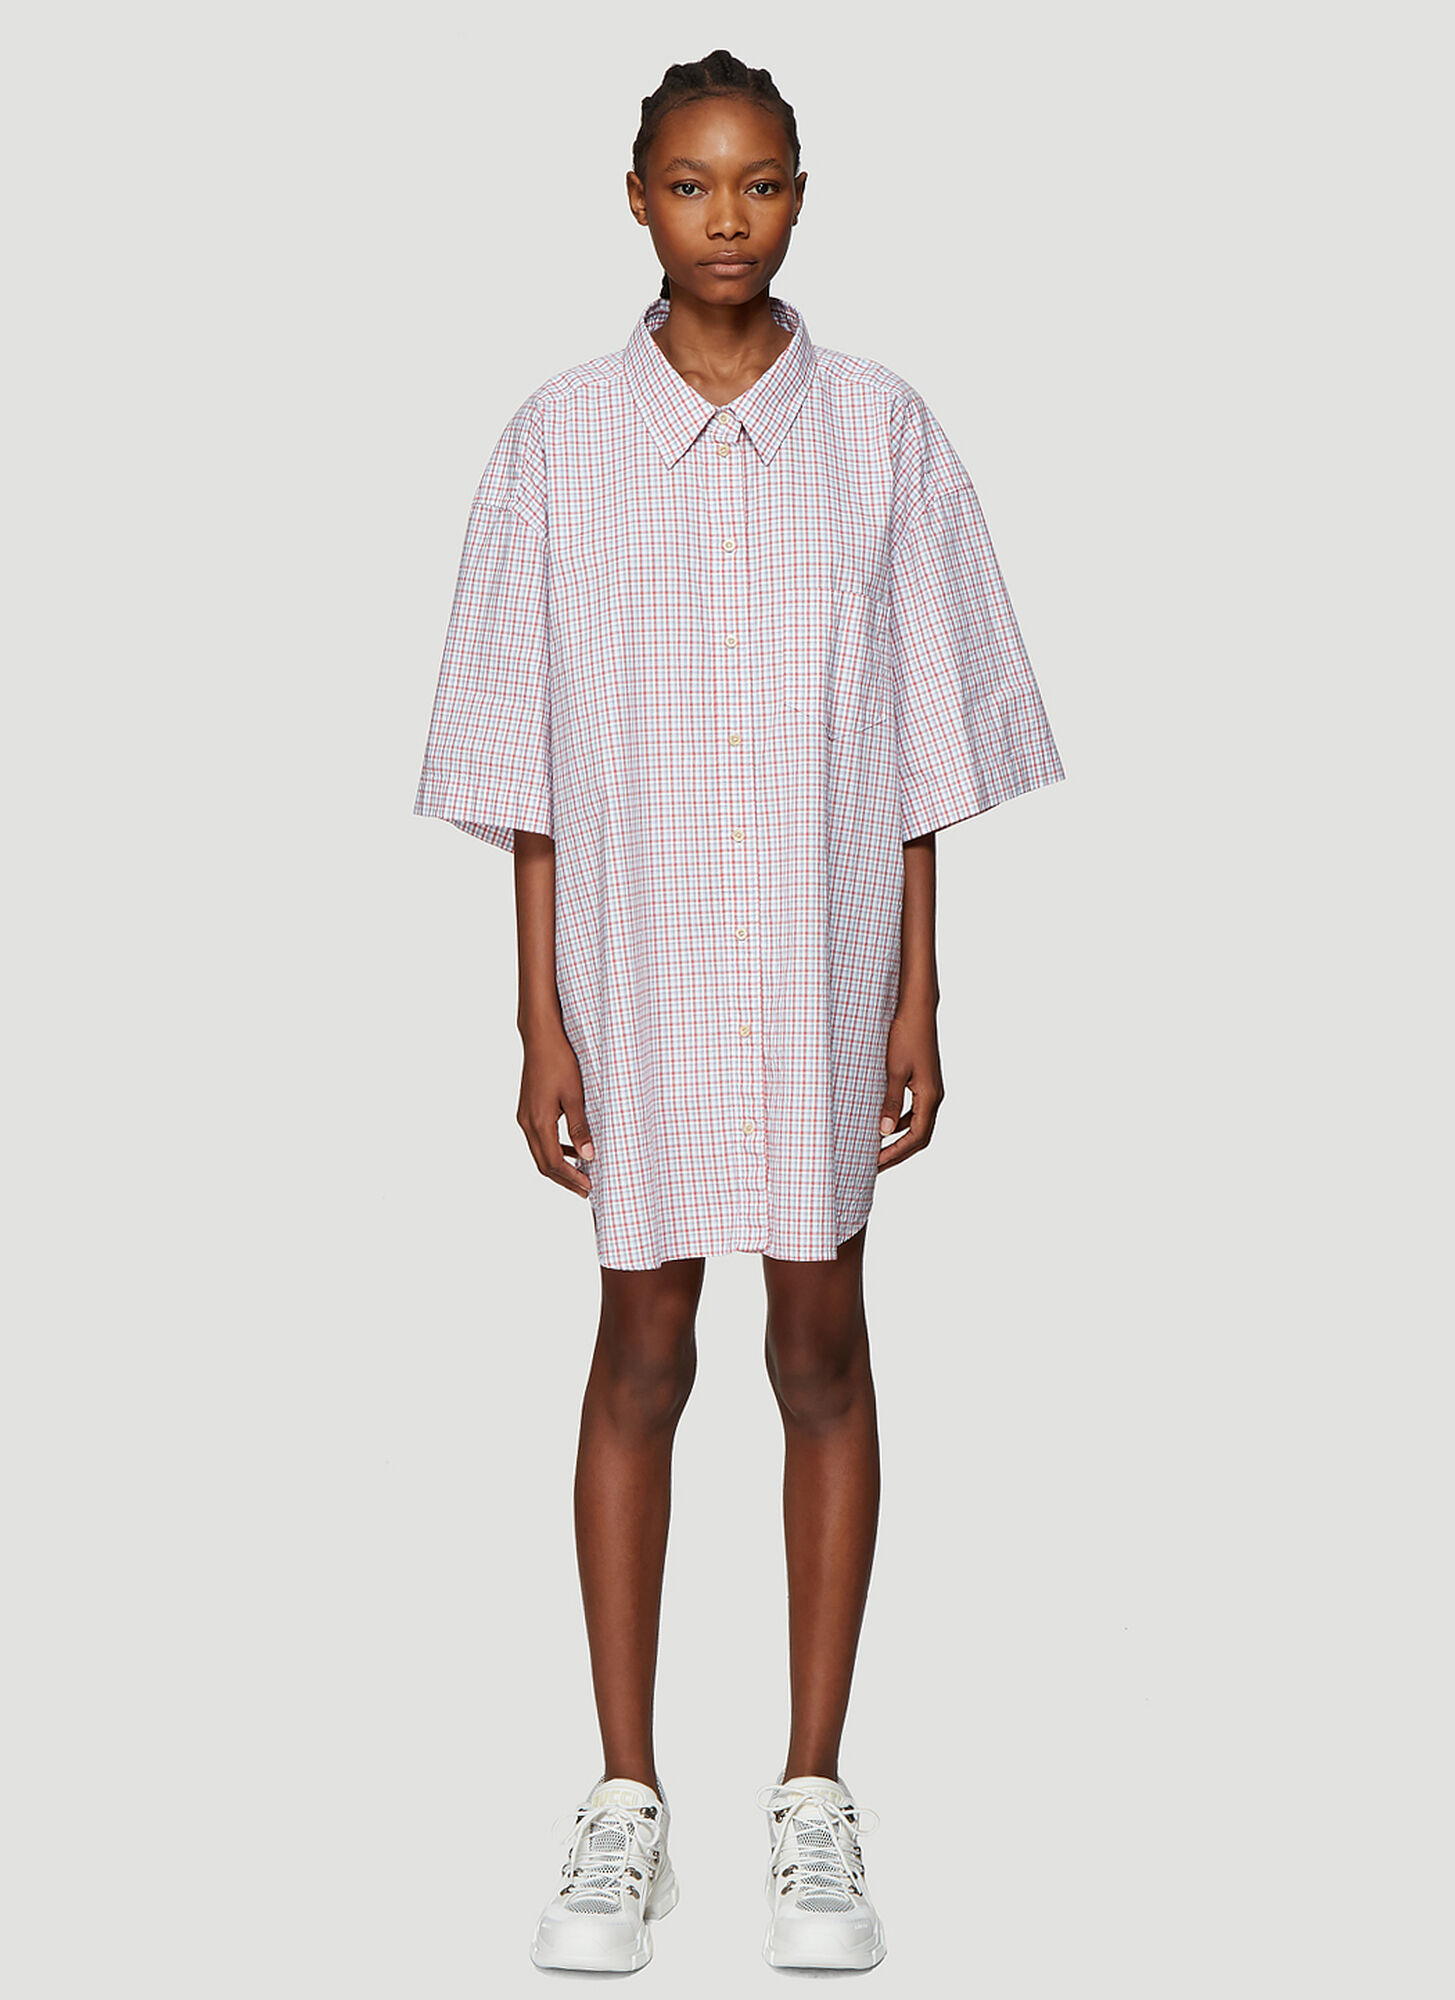 Photo of Gucci Oversized Check Shirt in Blue - Gucci Shirts